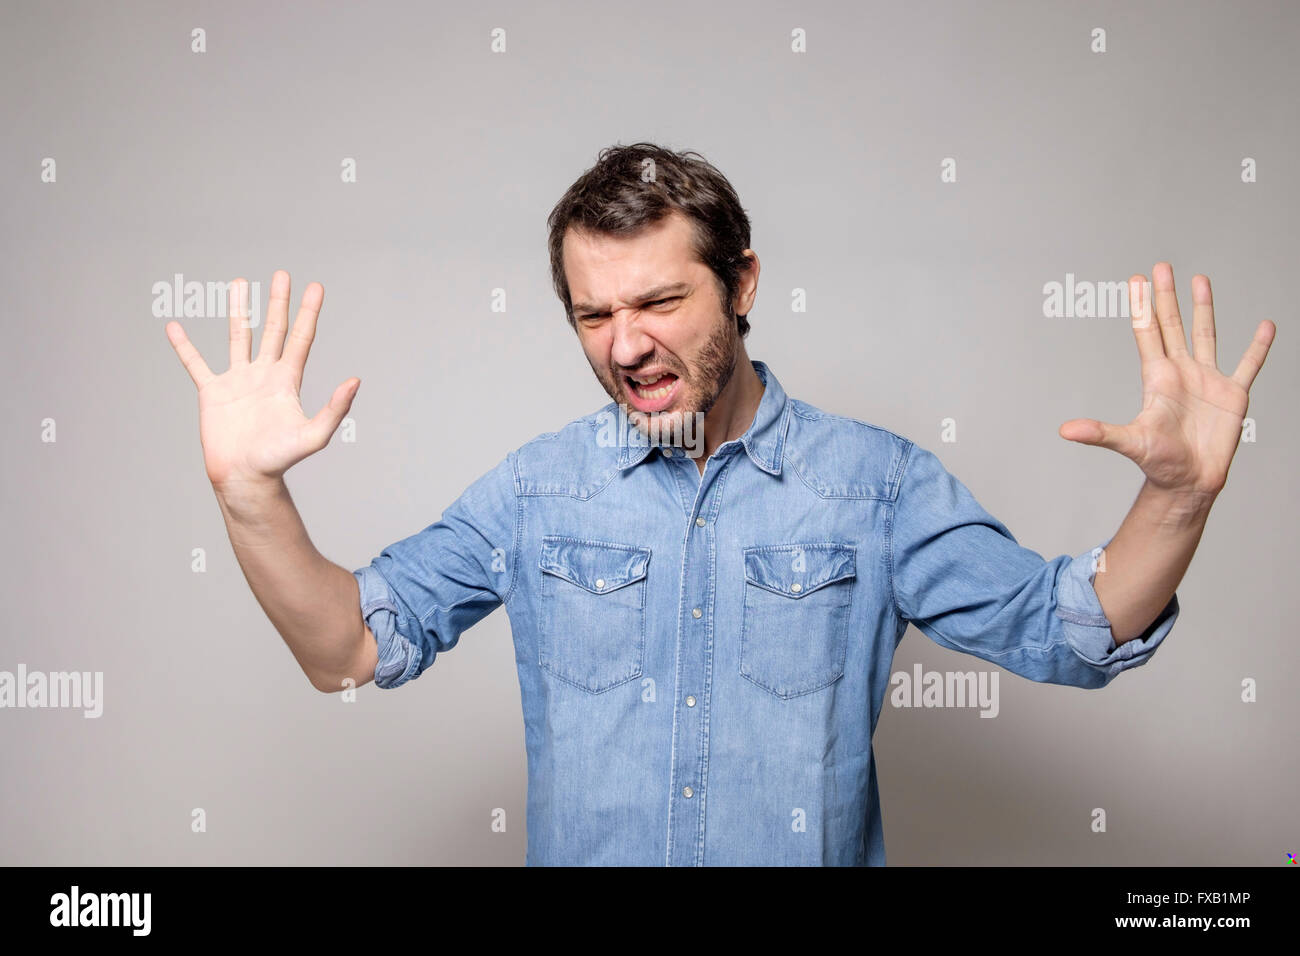 Man angry on gray background isolated - Stock Image